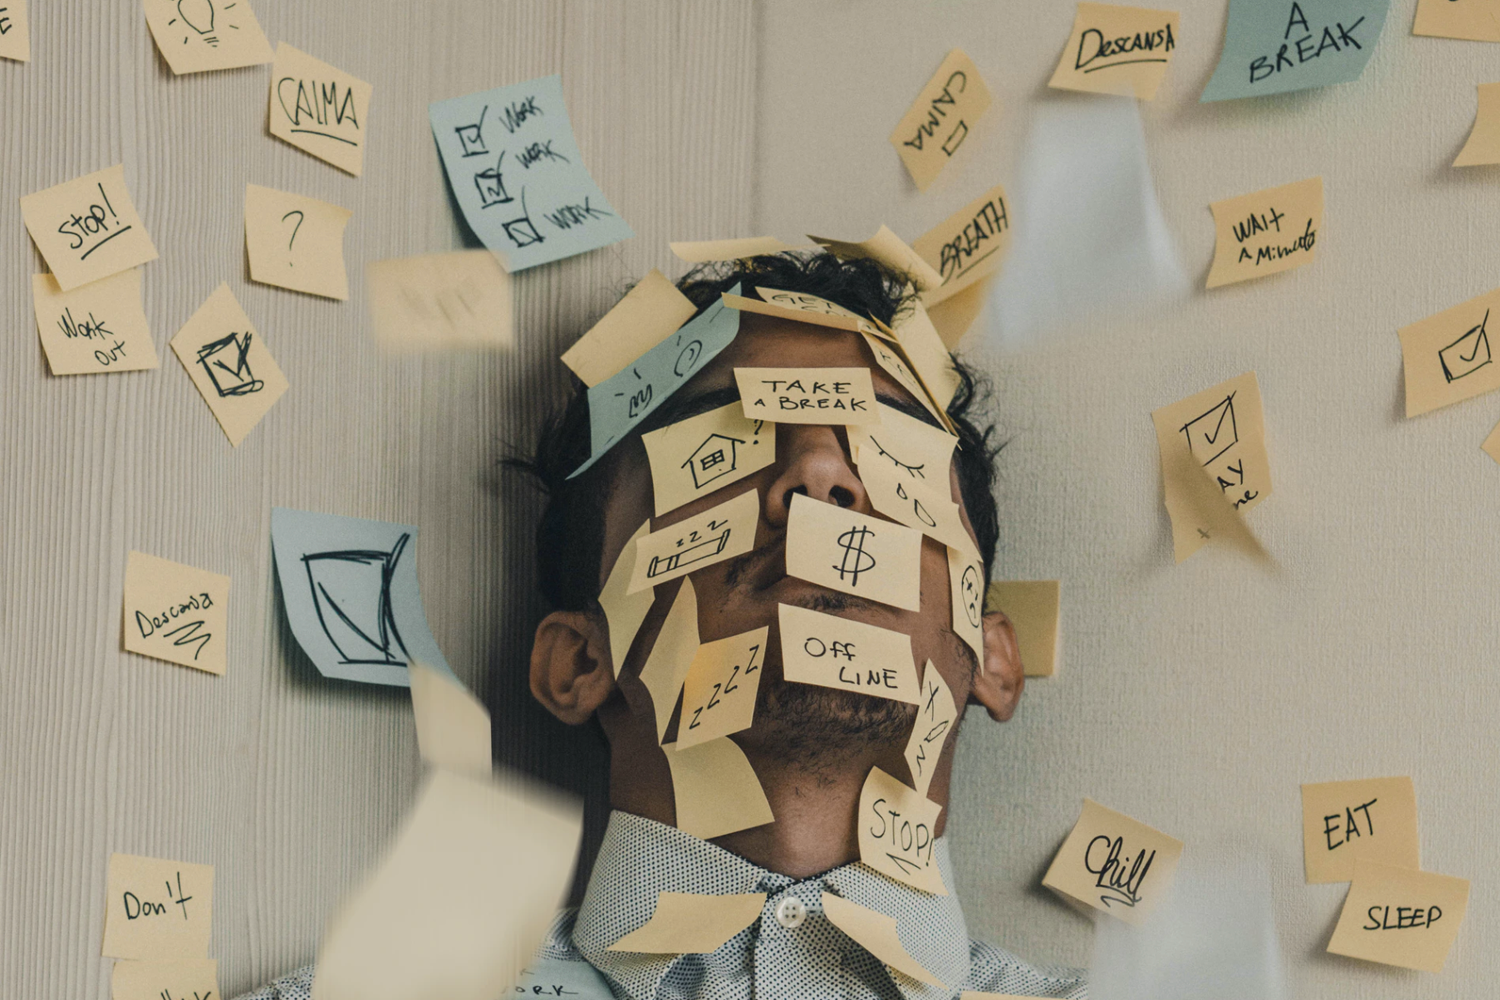 Man covered in sticky notes while leaning against the wall.